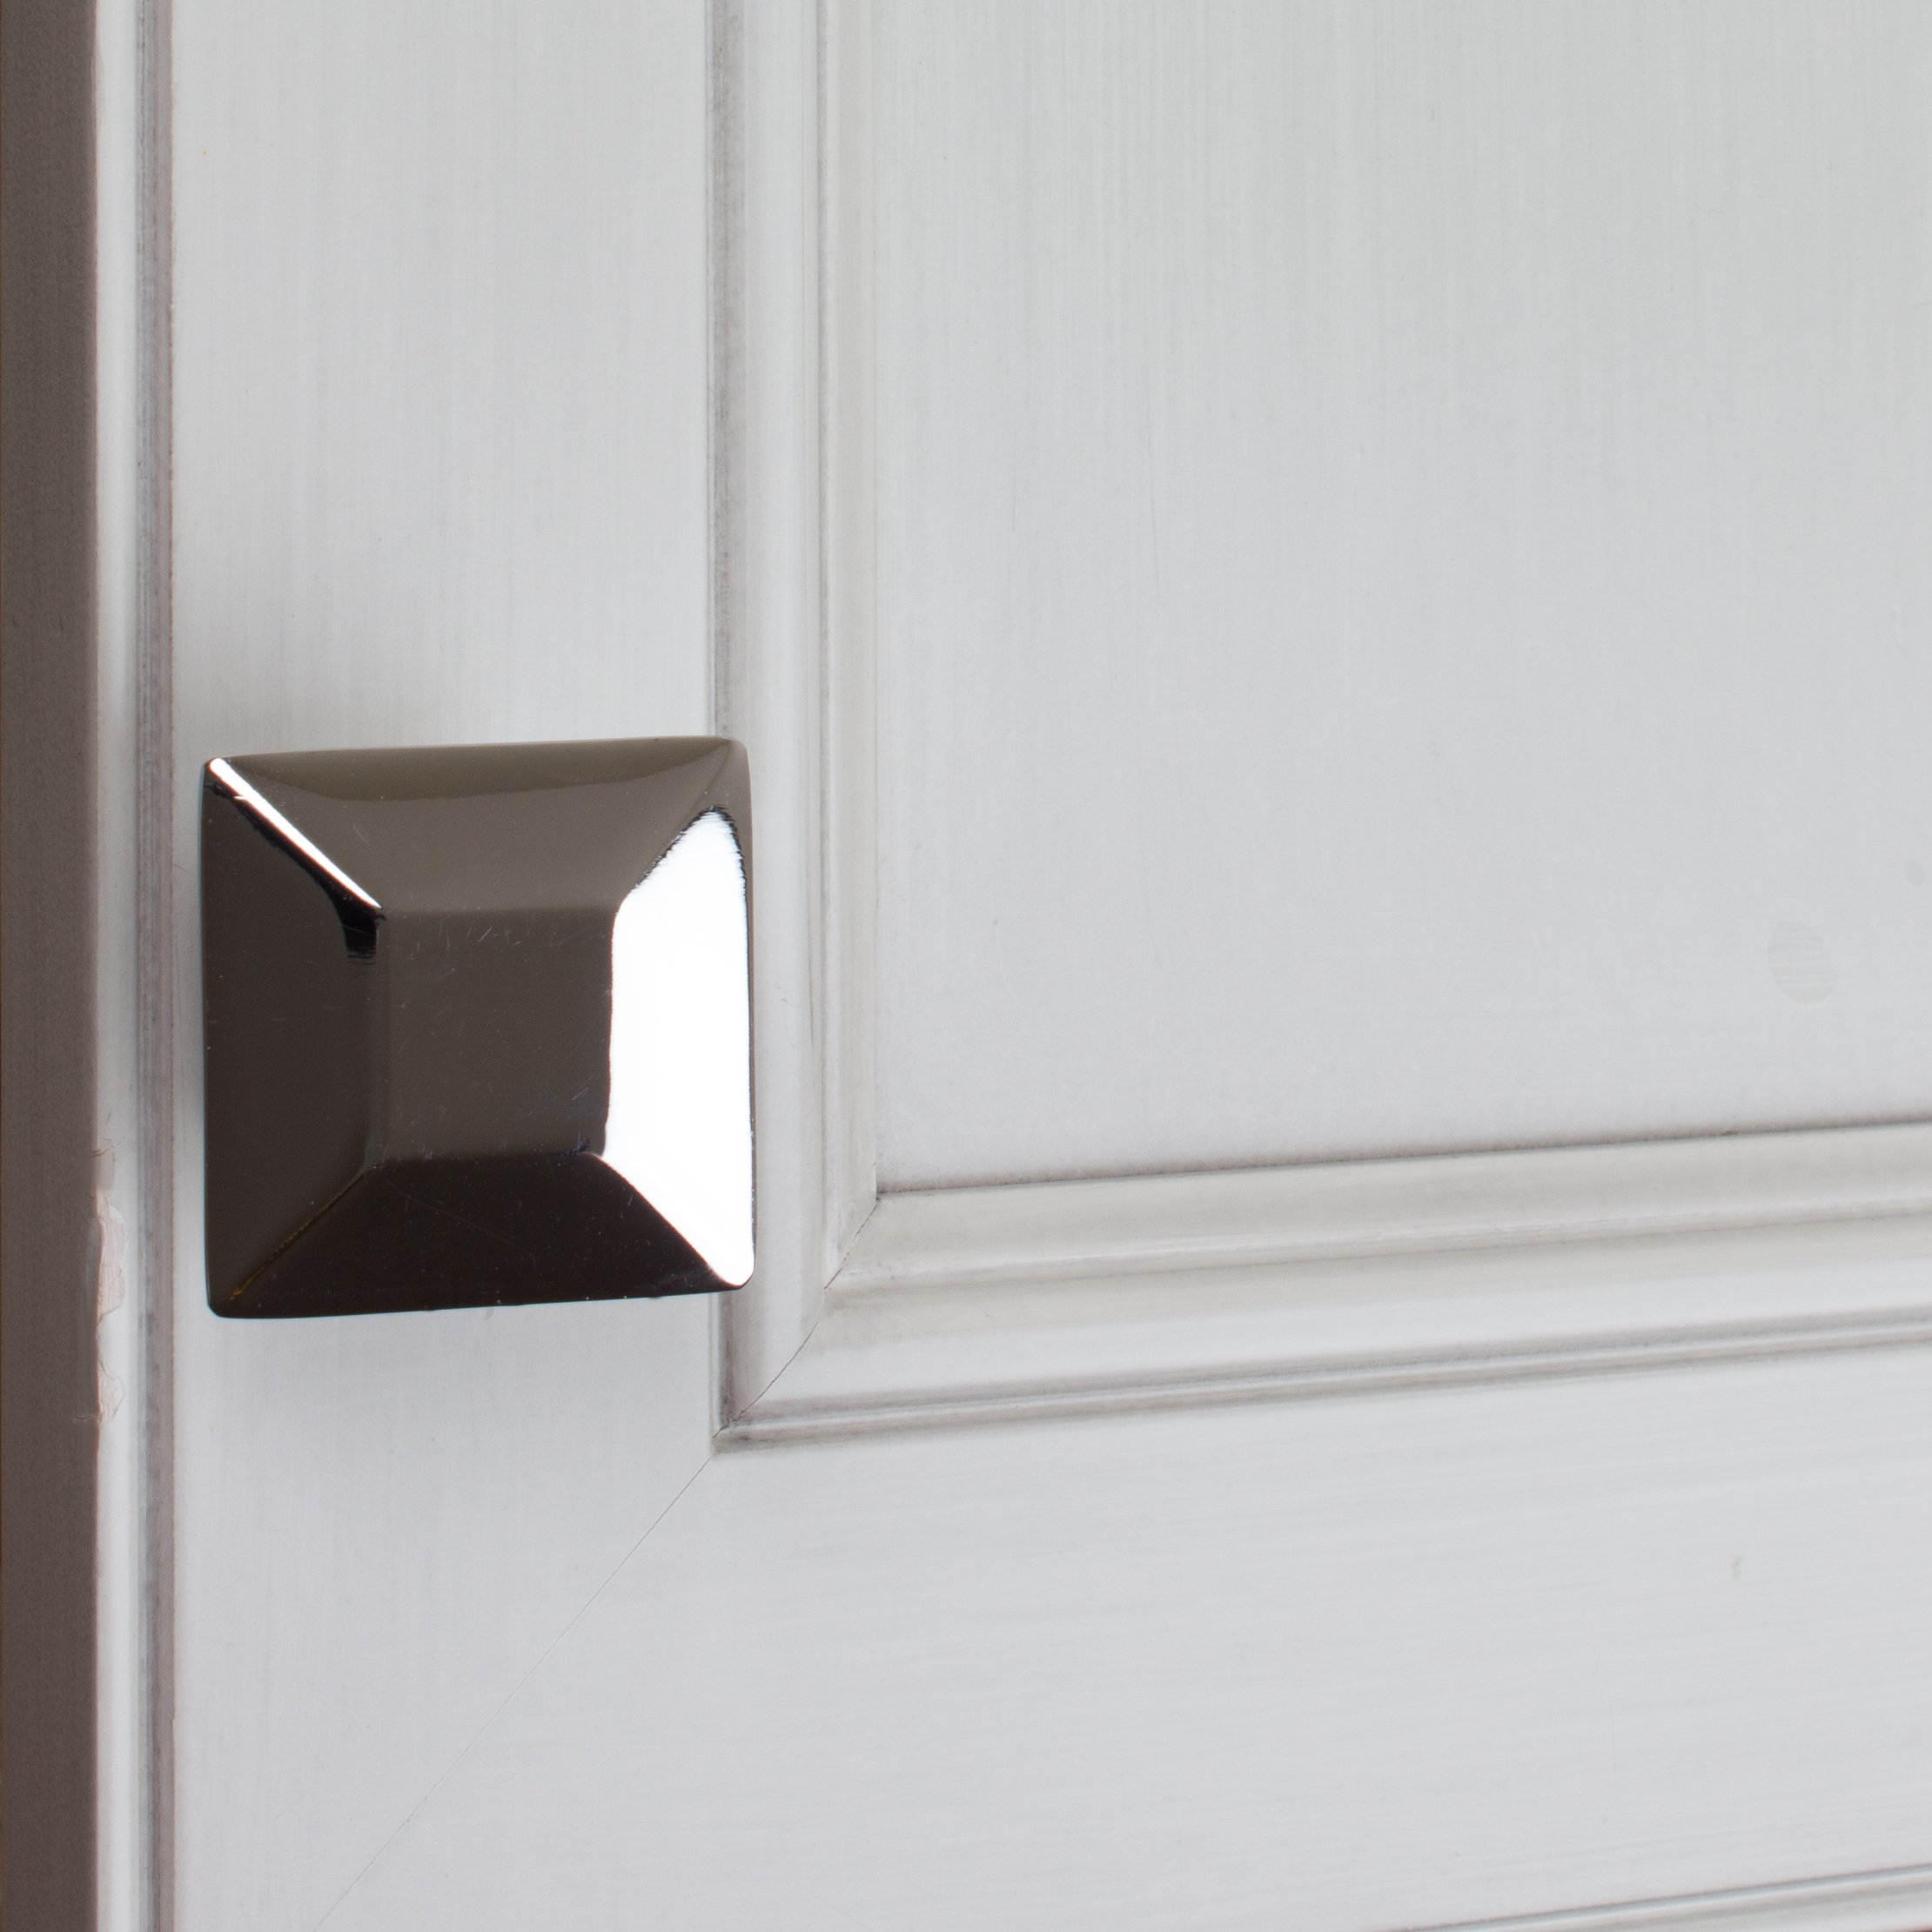 GlideRite Hardware 5101-PC-100 1.375 inch Polished Chrome Square Cabinet Knobs 100 Pack by GlideRite Hardware (Image #4)